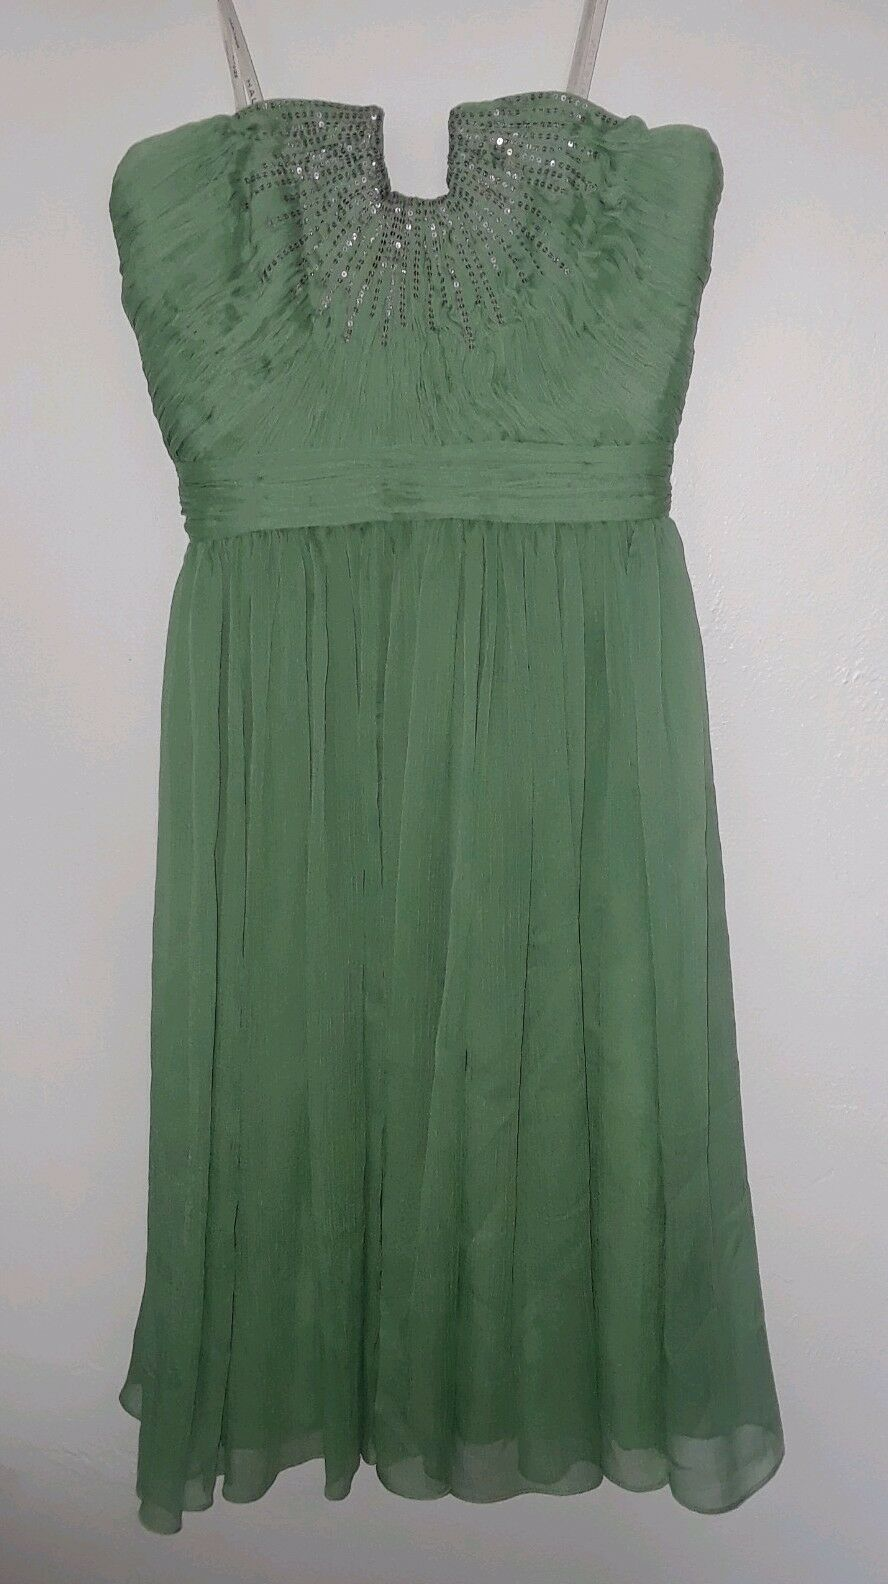 HALSTON HERITAGE Meadow Embellished Strapless Strapless Strapless Dress Size 0 NEW  545 0af233